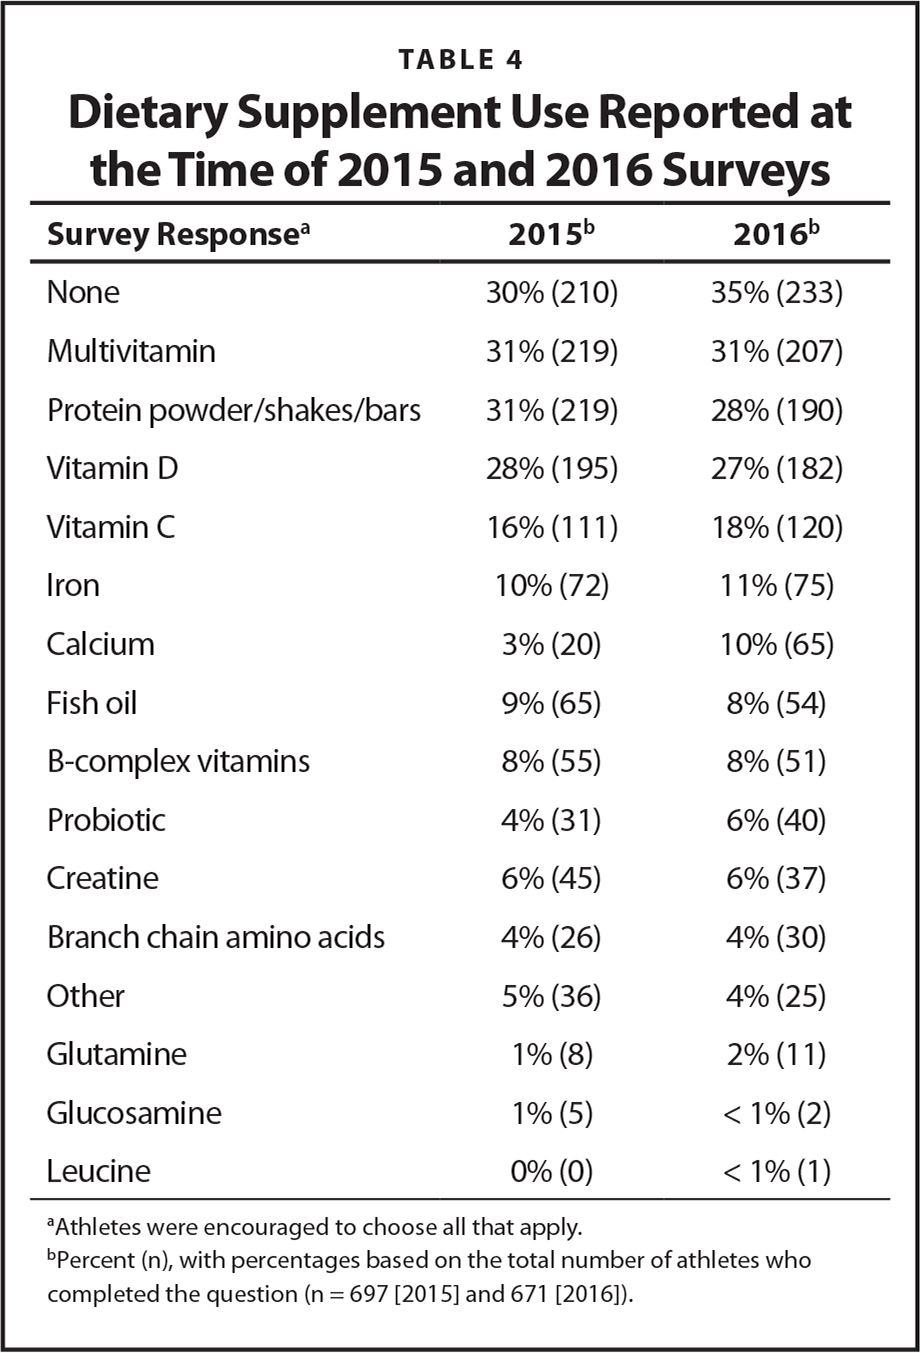 Dietary Supplement Use Reported at the Time of 2015 and 2016 Surveys